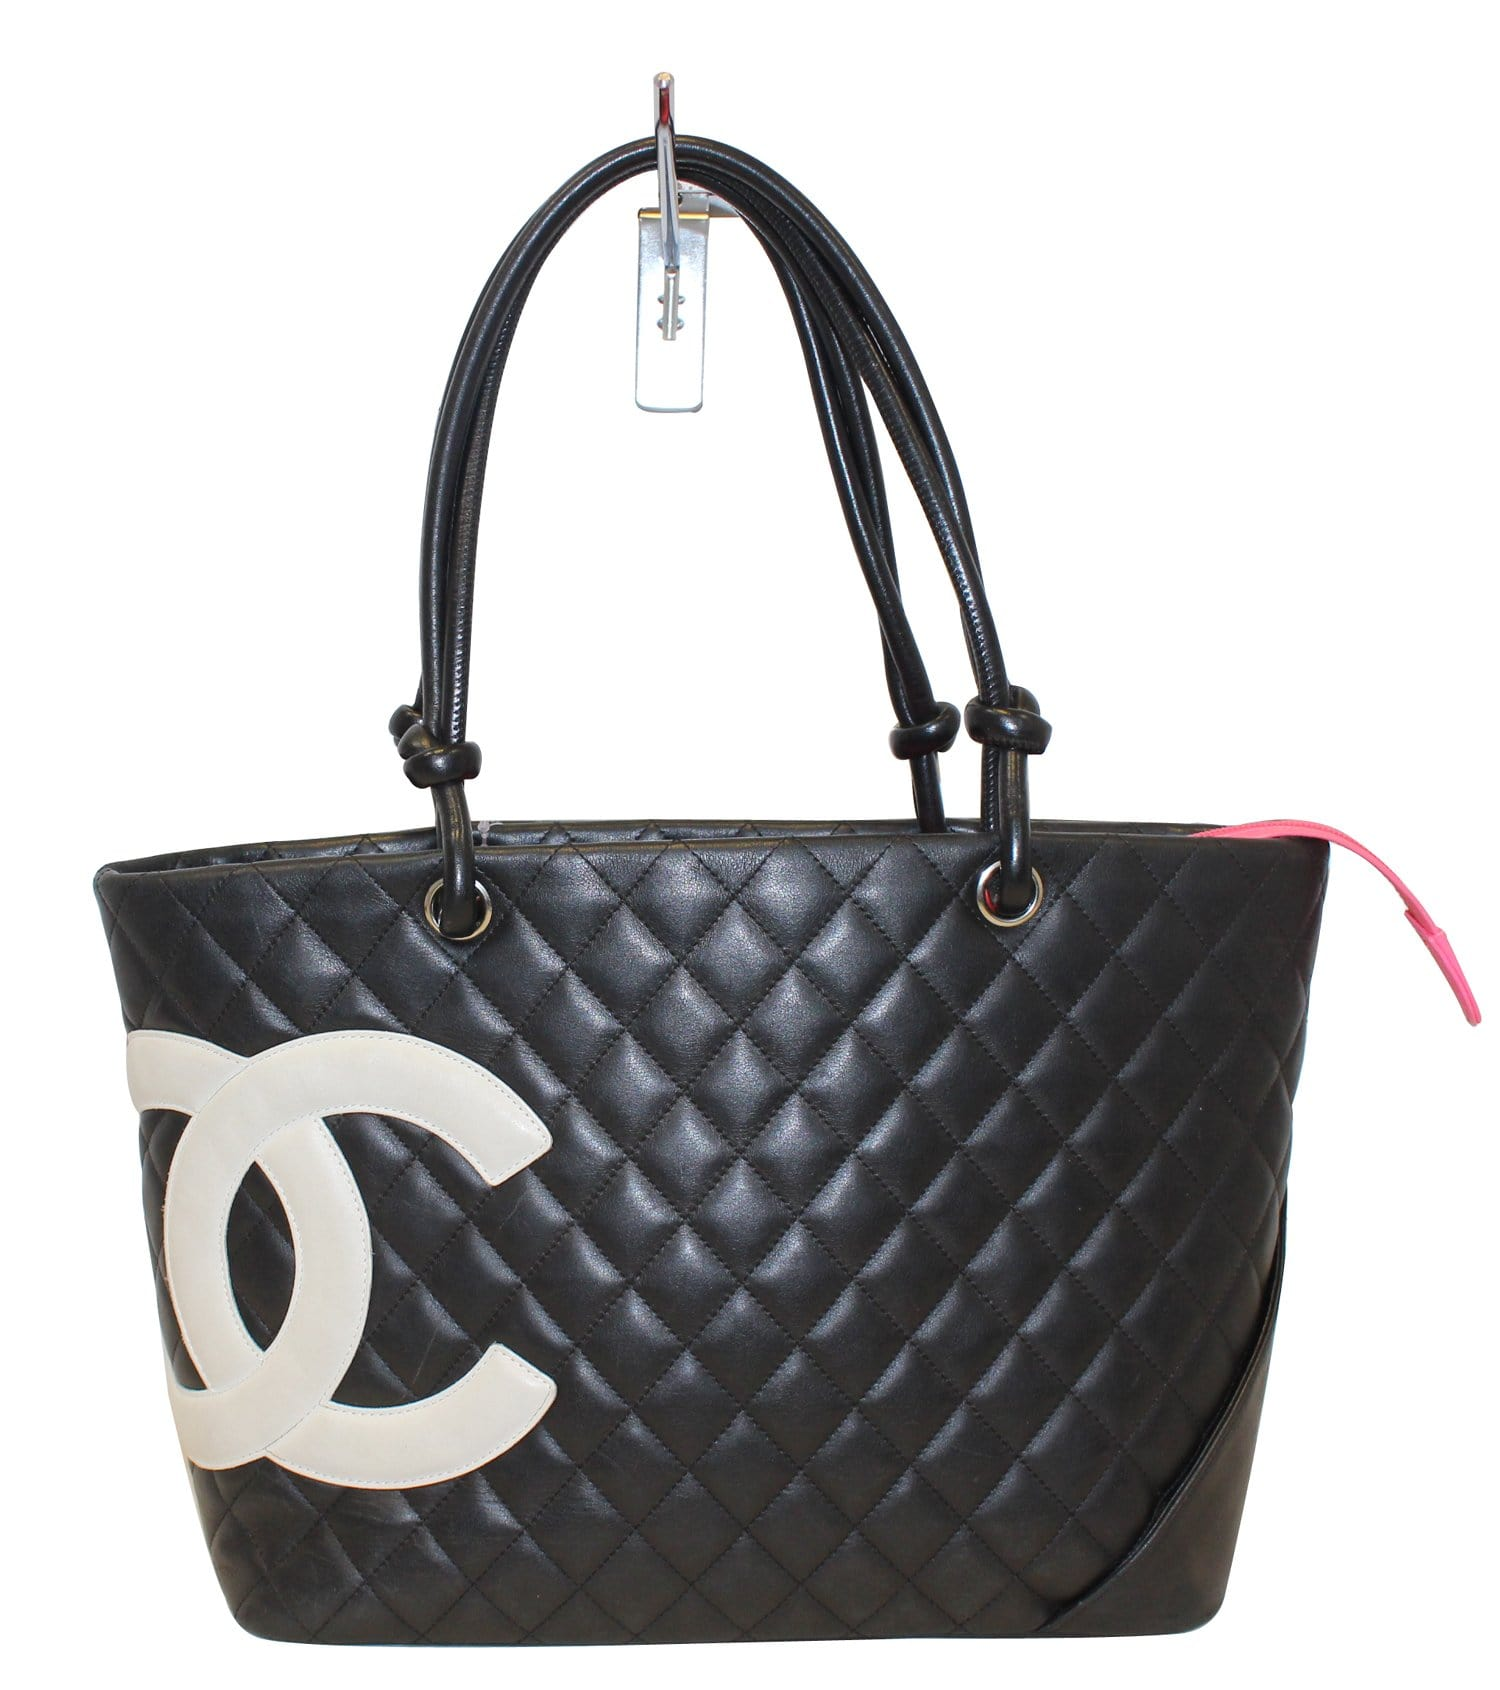 425b2bab08 CHANEL Black Quilted Leather Large Cambon Tote Bag